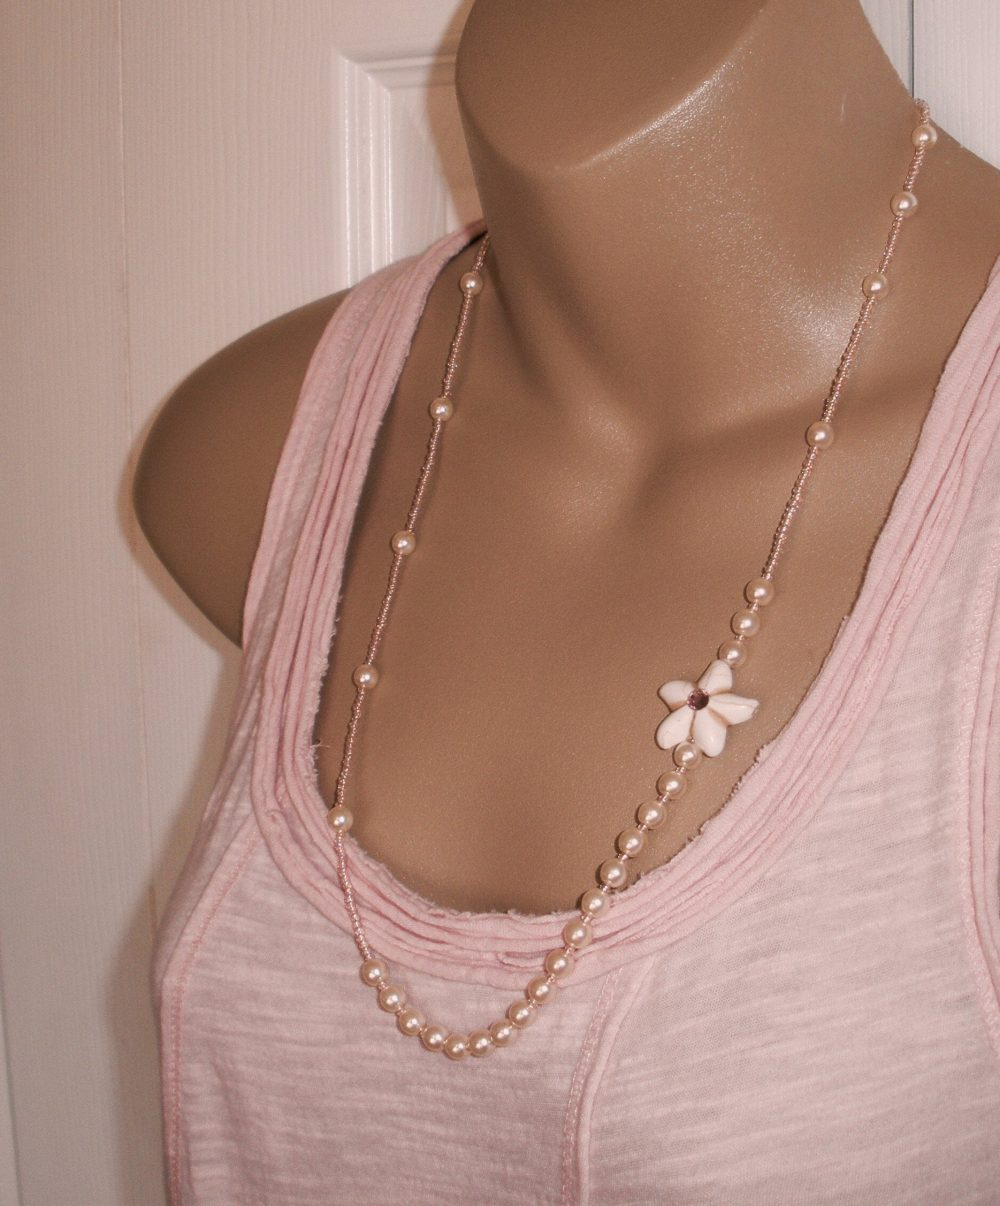 Blush & Pearl Necklace, Mother Of The Bride Jewelry, Groom Wedding Necklaces, Summer Event Jewelry